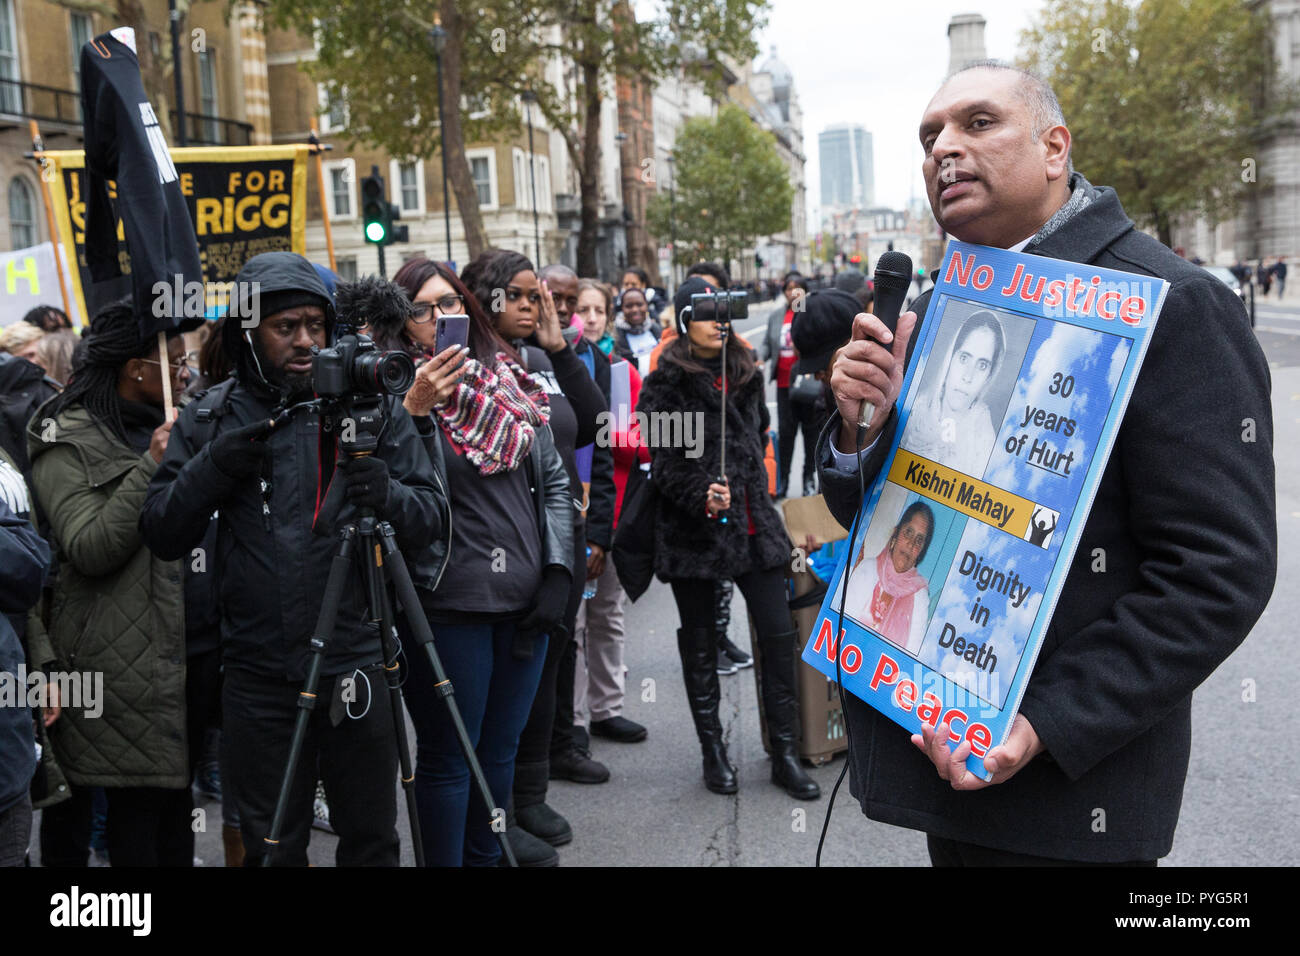 London, UK. 27th October, 2018. Raj Mahay, son of Kishni Mahay, addresses campaigners from the United Families and Friends Campaign (UFFC) taking part in the 20th annual procession to Downing Street in remembrance of family members and friends who died in police custody, prison, immigration detention or secure psychiatric hospitals. Kishni Mahay, 64, was hit by a police car responding to an emergency call in Wolverhampton on 14th March 1989. Credit: Mark Kerrison/Alamy Live News - Stock Image